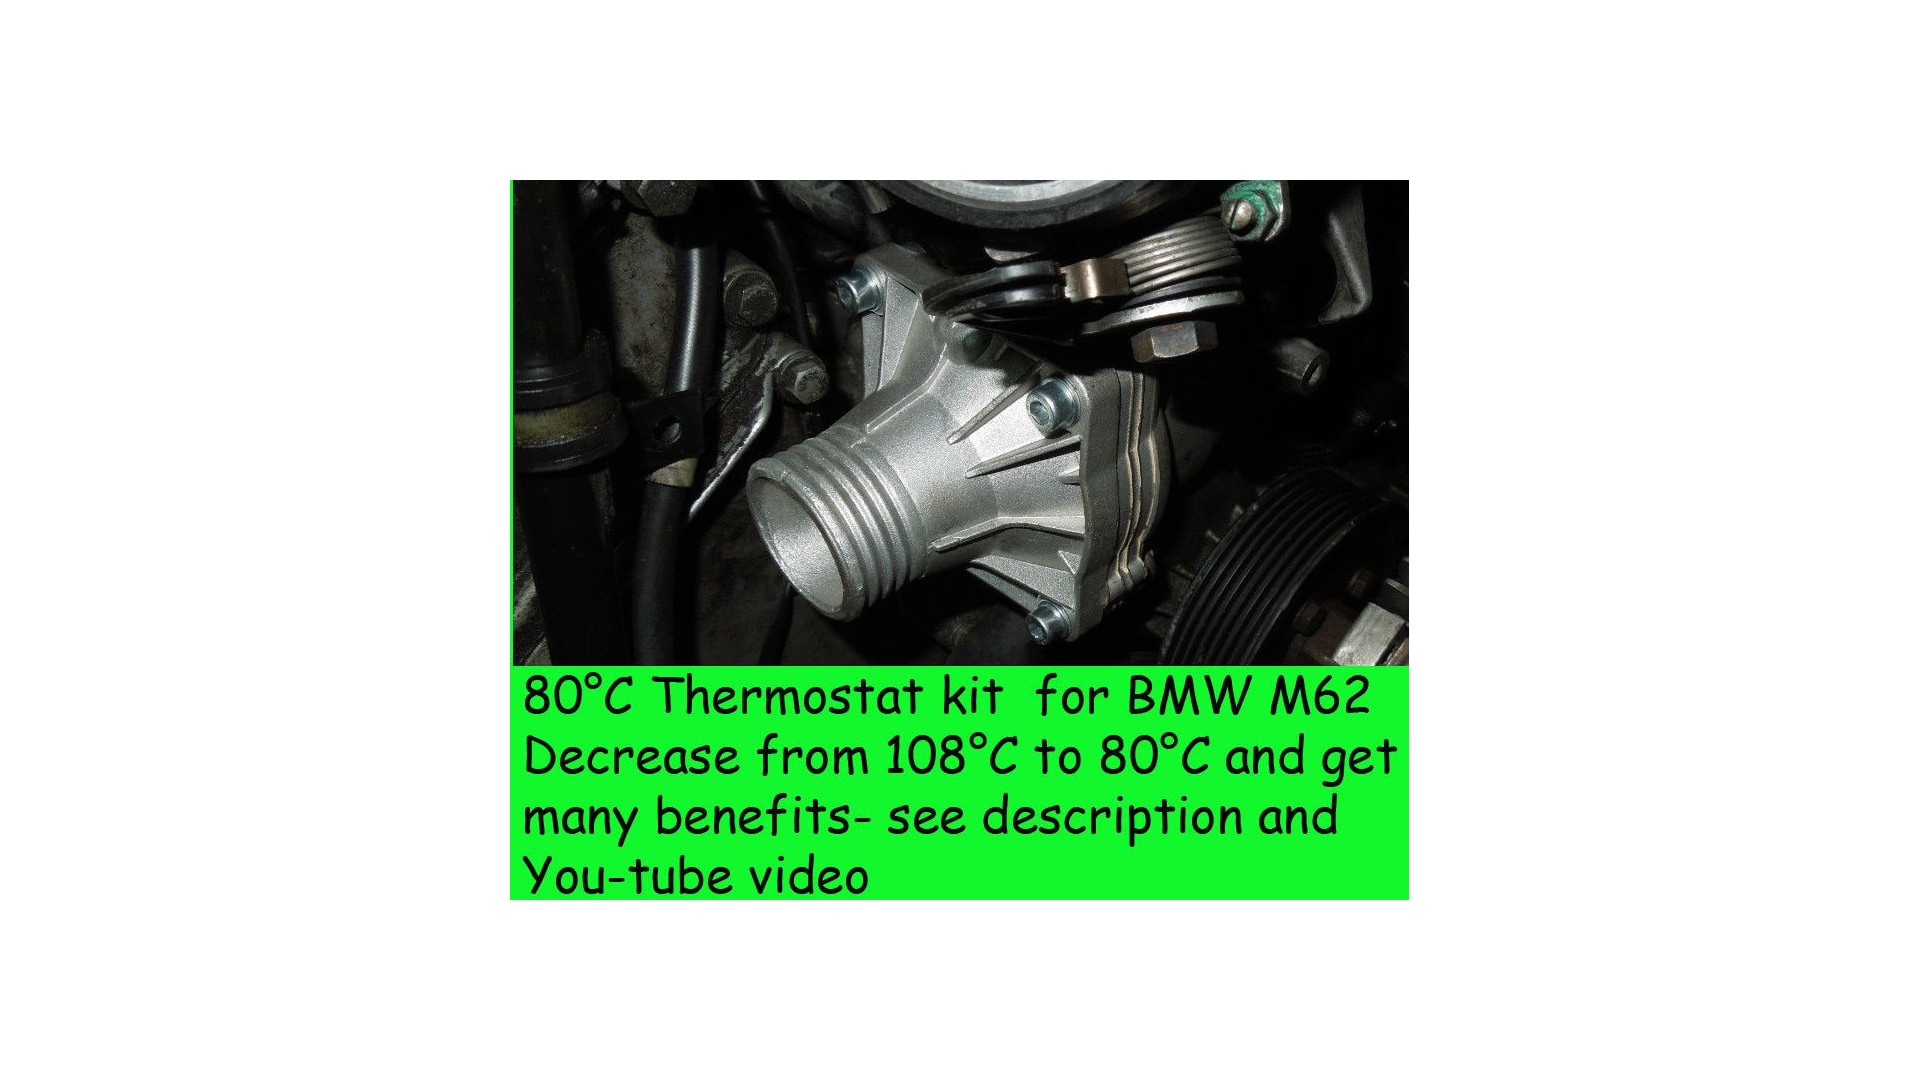 80c thermostat kit for bmw e39 540i e38 740i x5 z8 e52 m62 range rover 44 reduce engine temperature 80�c thermostat kit for bmw e39 540i e38 740i x5 z8 e52 m62 Honeywell Thermostat Wiring Diagram at webbmarketing.co